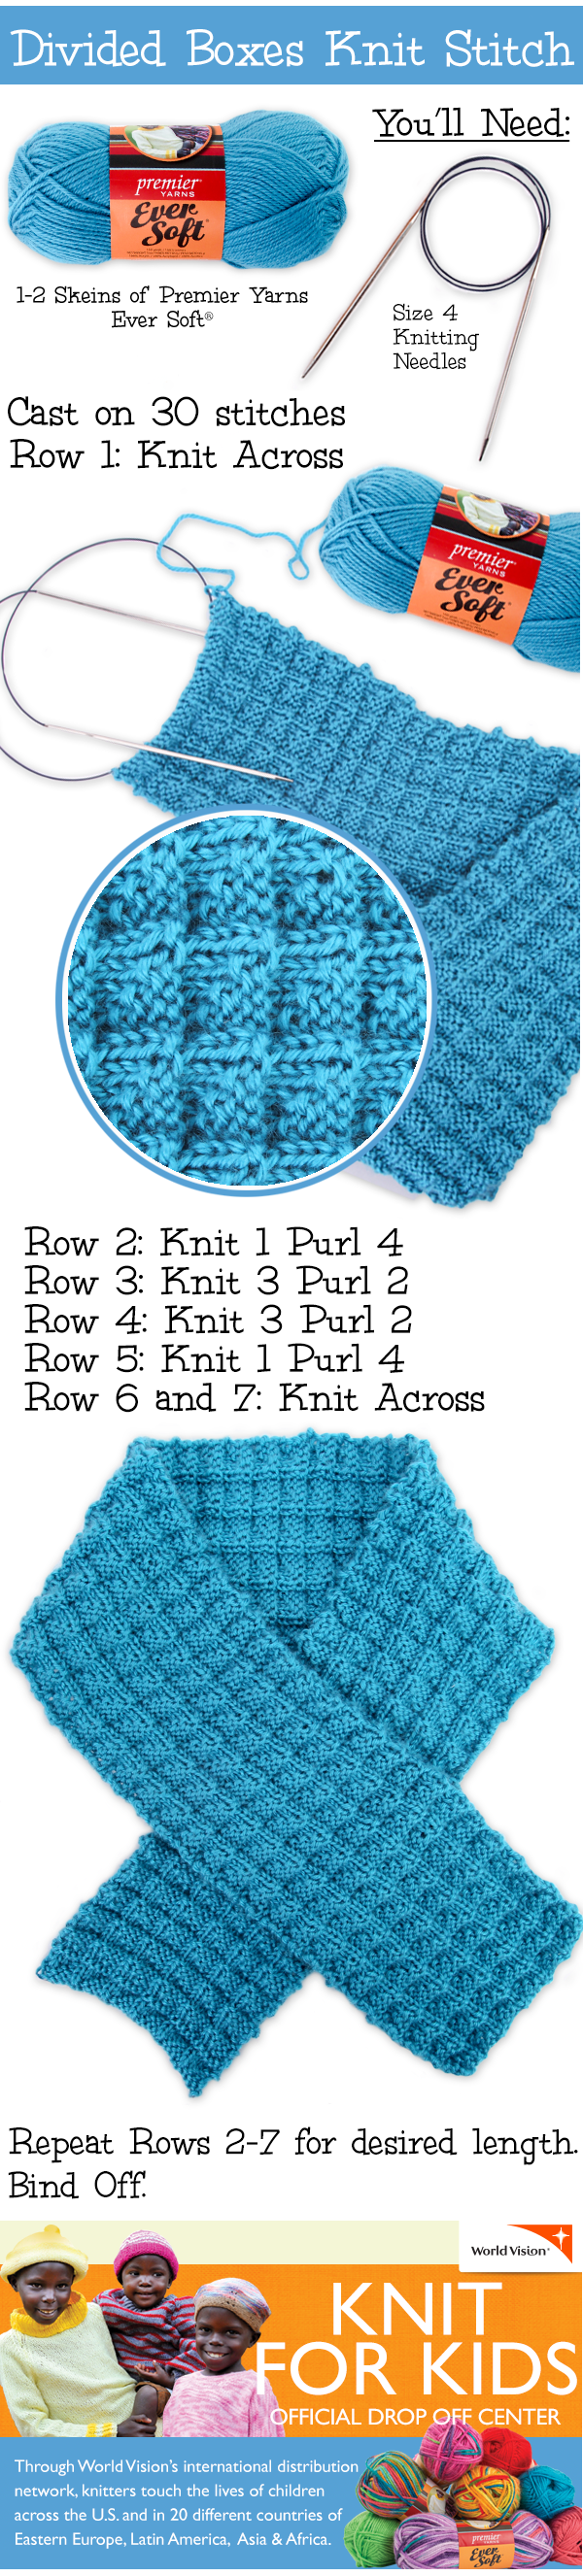 Divided Boxes Knit Stitch Scarf - Free Knitted Pattern | Knitting ...